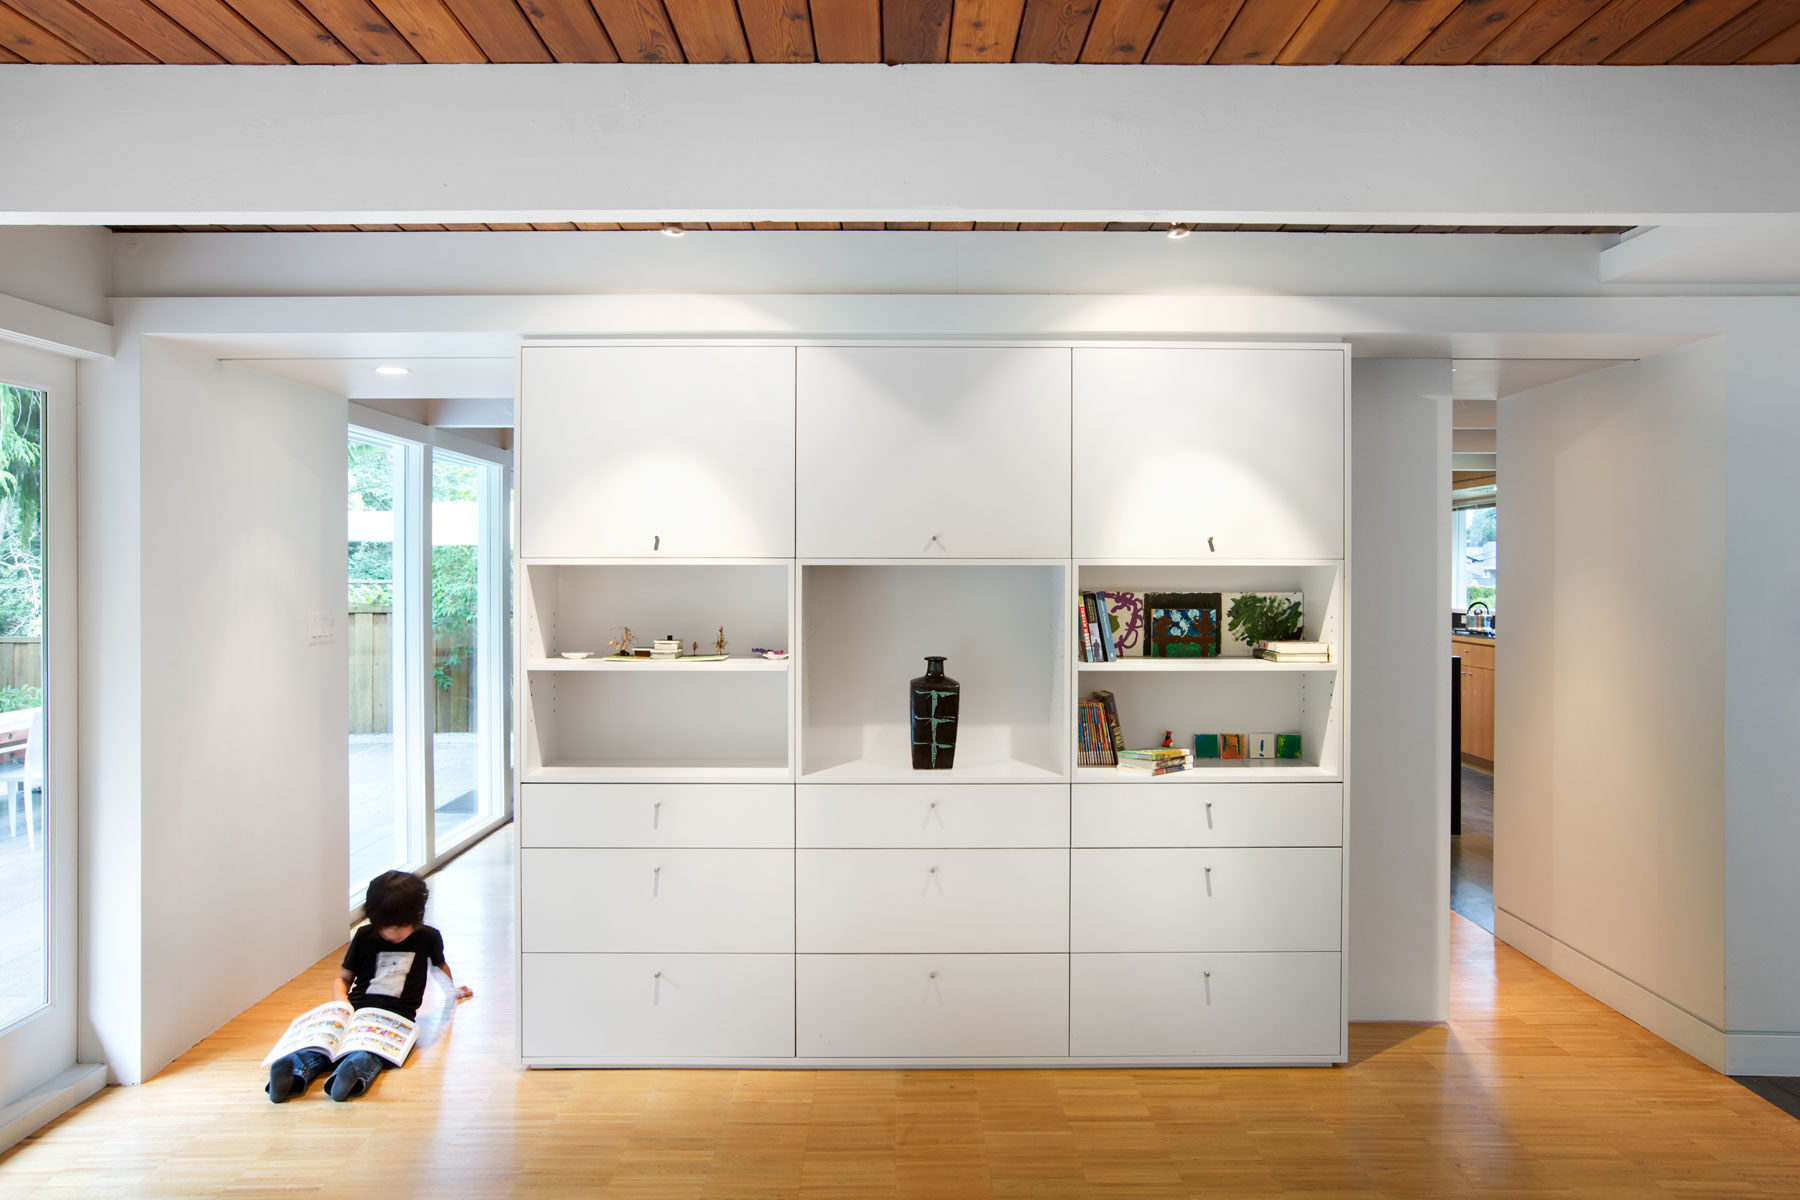 office of mcfarlane biggar architects + designers, North Vancouver, British Columbia, Canada, Glenview House